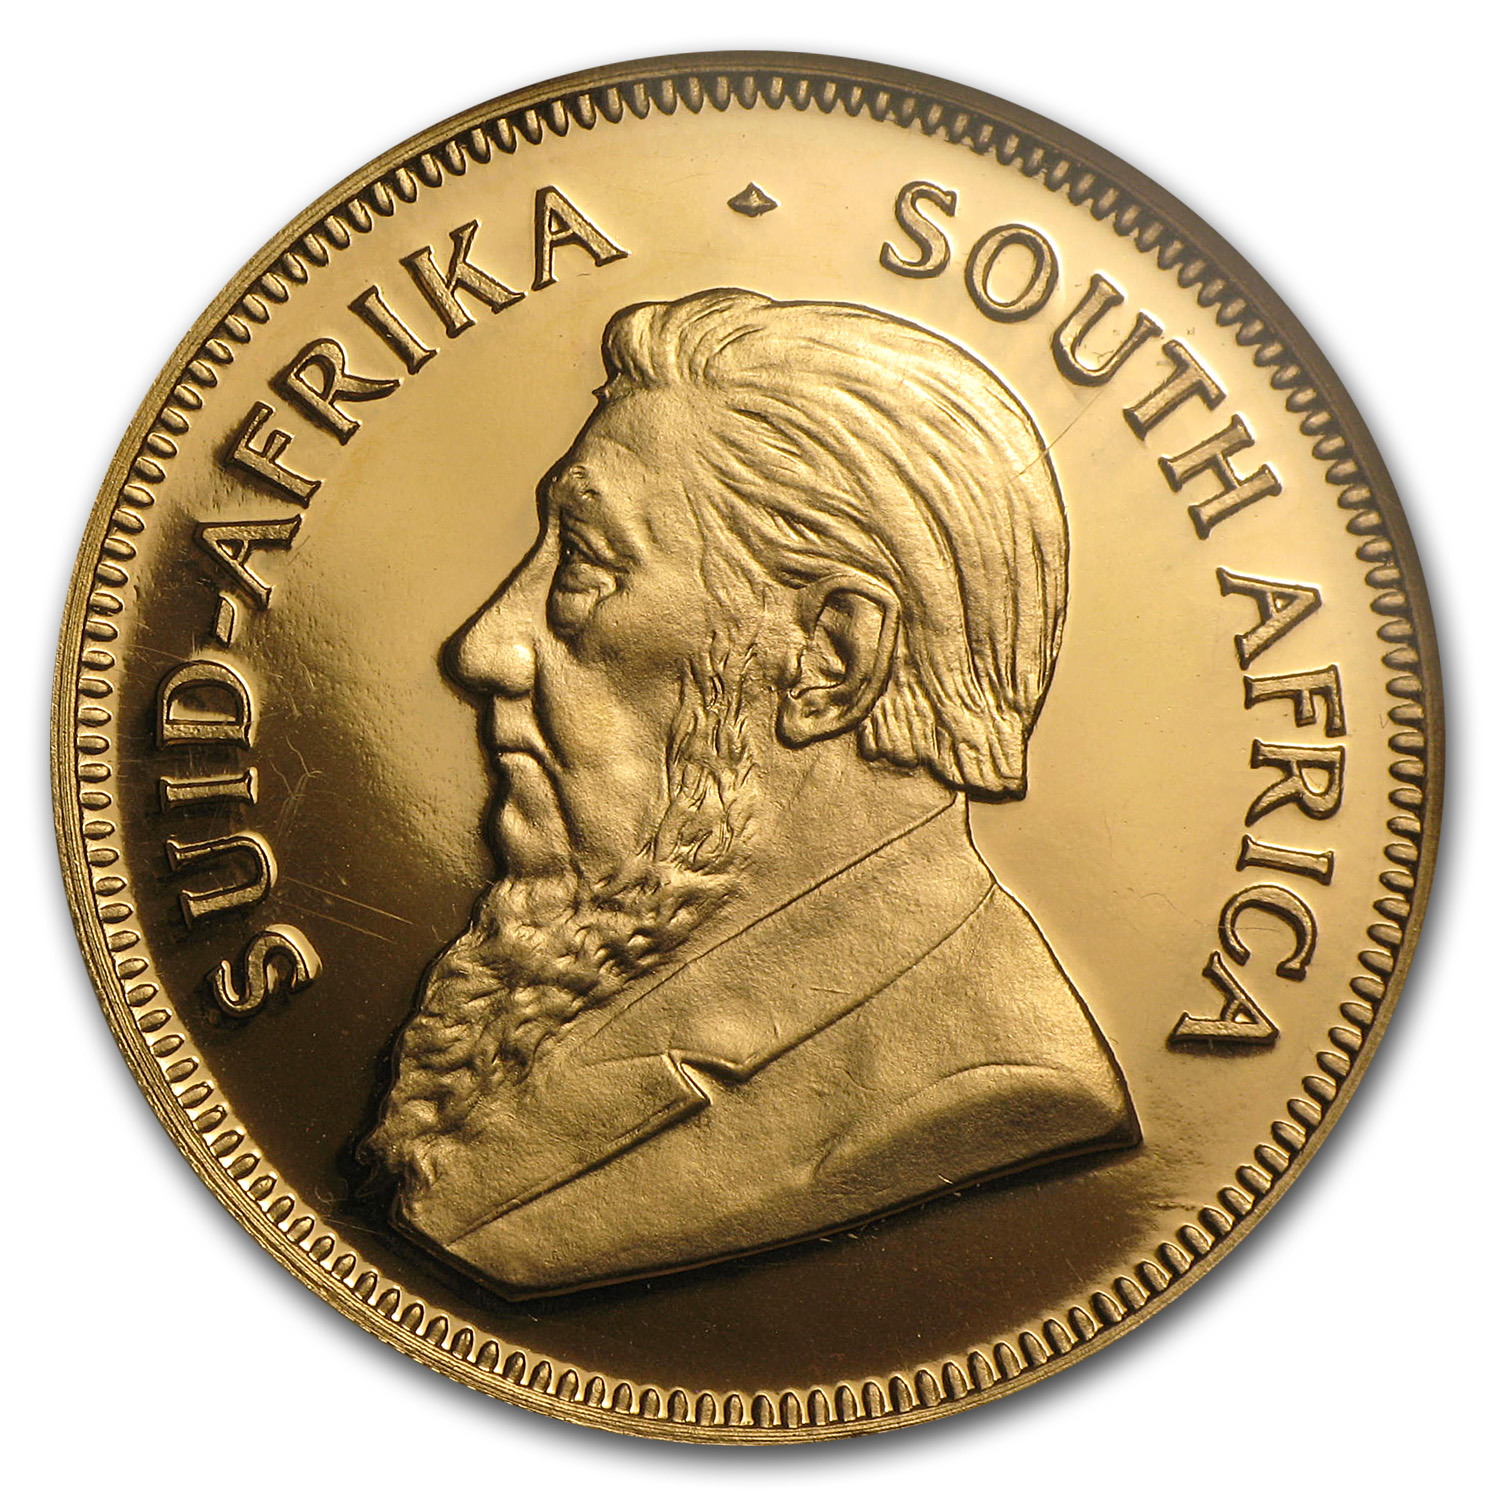 1977 1 oz Gold South African Krugerrand PF-66 Cameo NGC